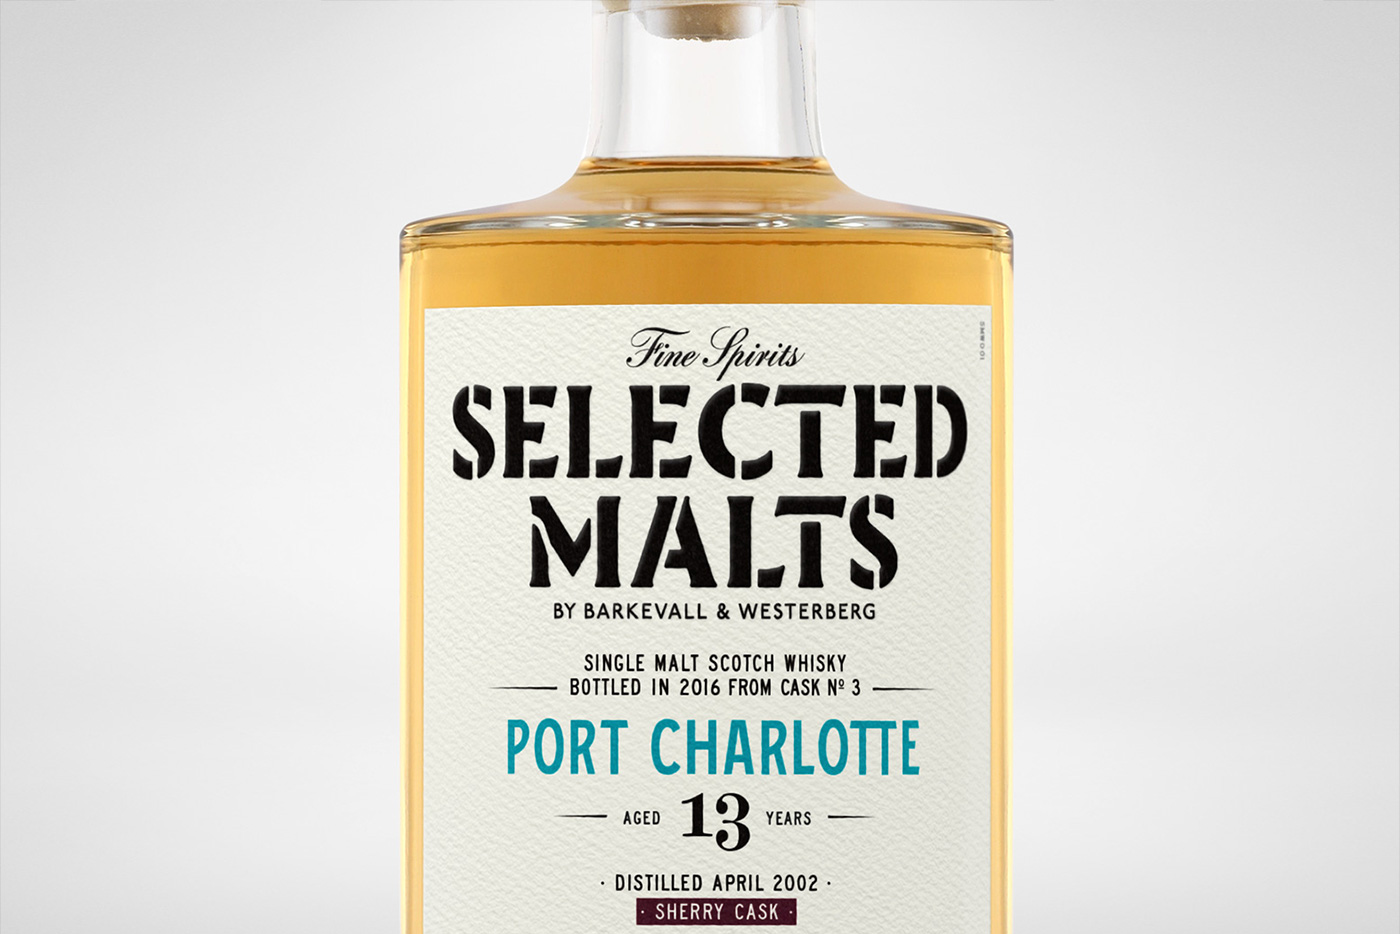 Selected Malts